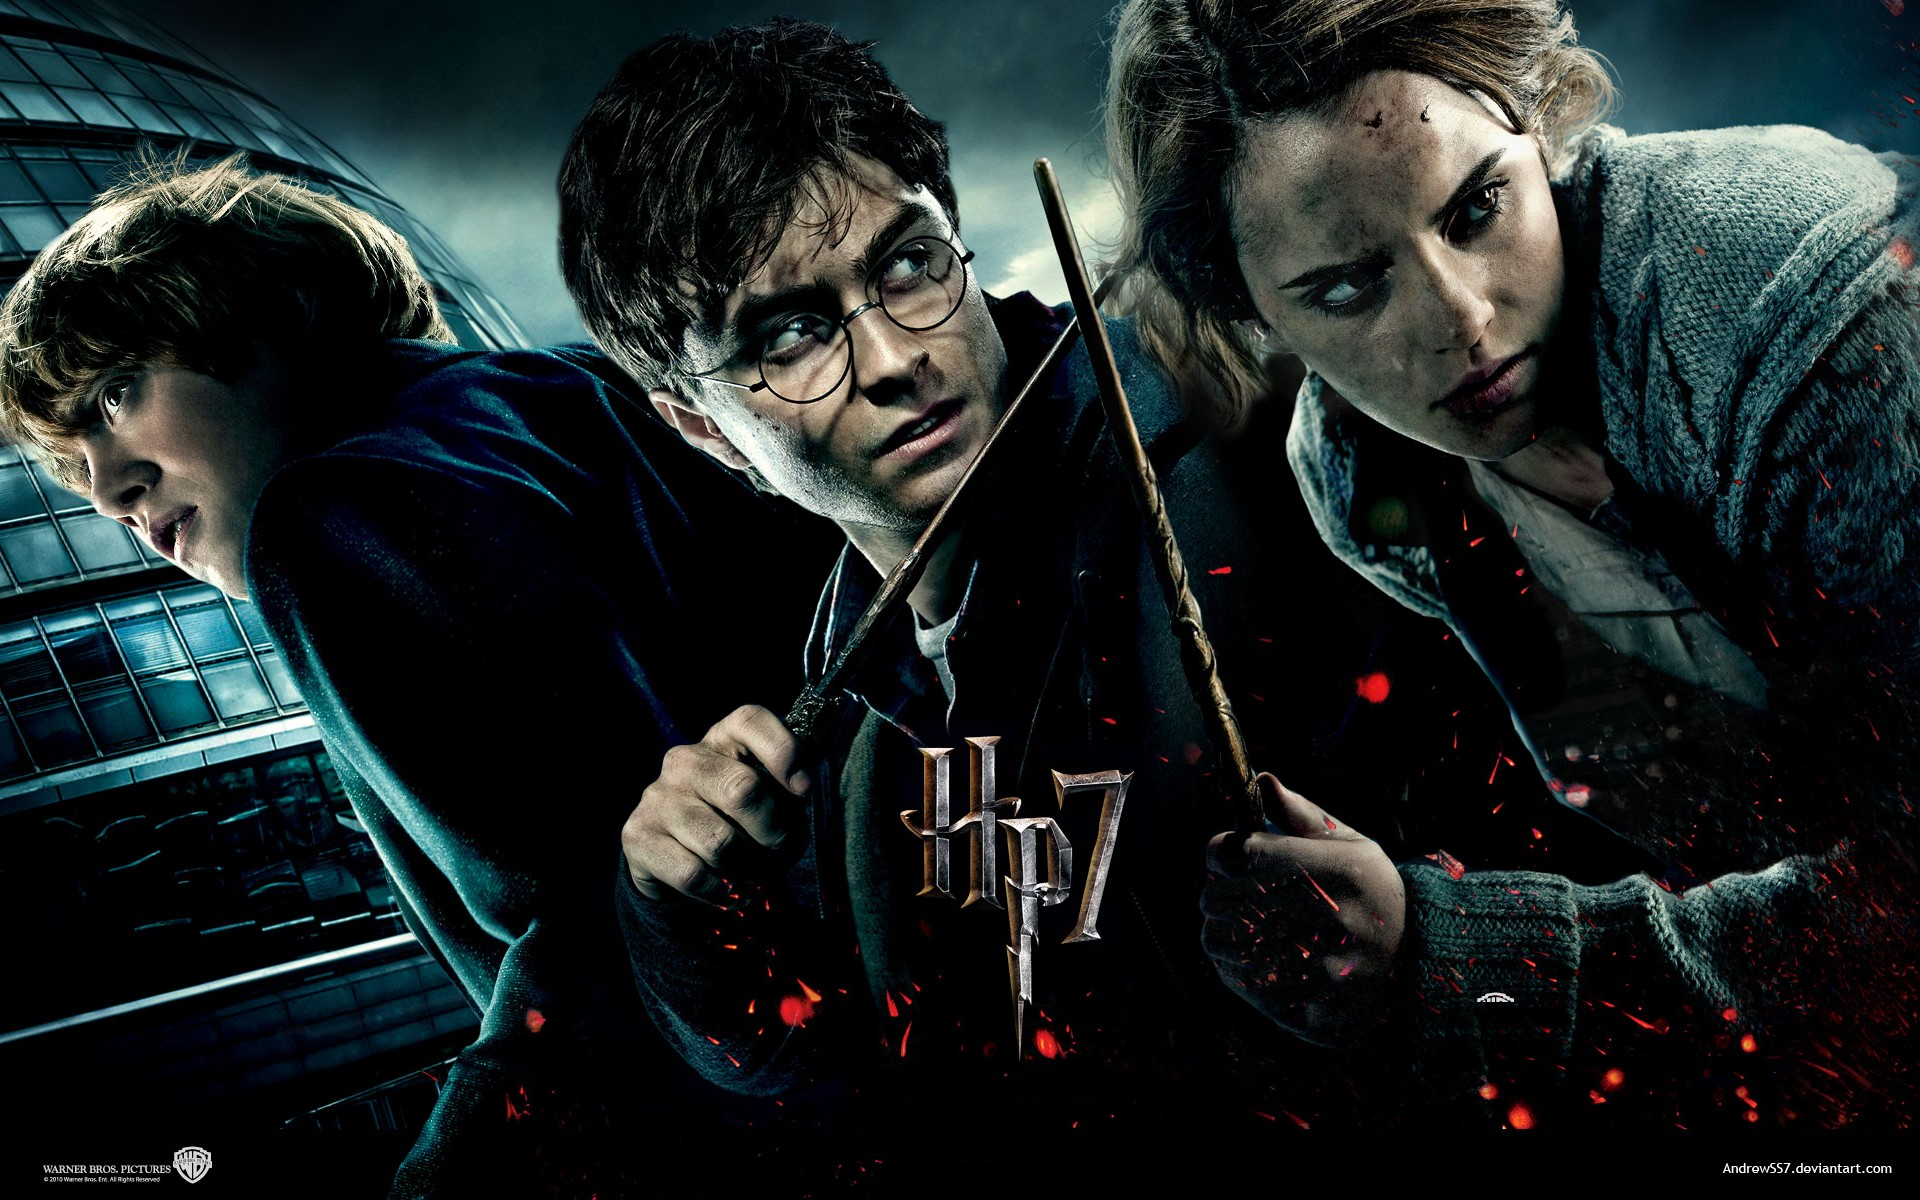 Harry Potter And The Deathly Hallows Wallpaper Hd Harry Potter Images Harry Potter Hd Wallpaper And